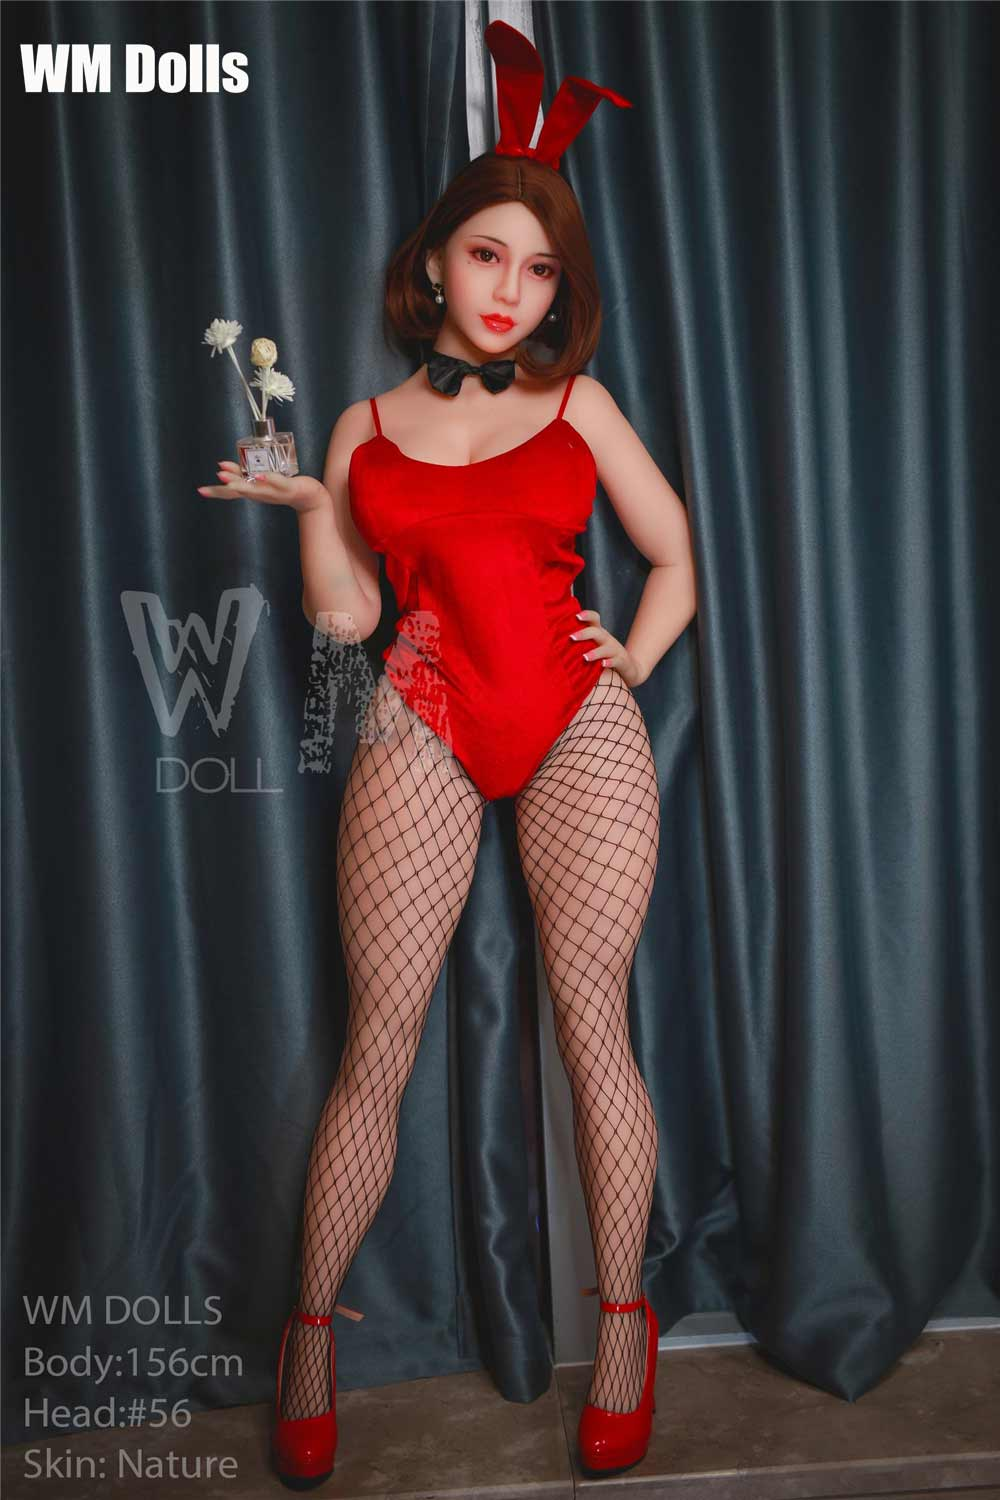 Big breasted sex doll in red high heels